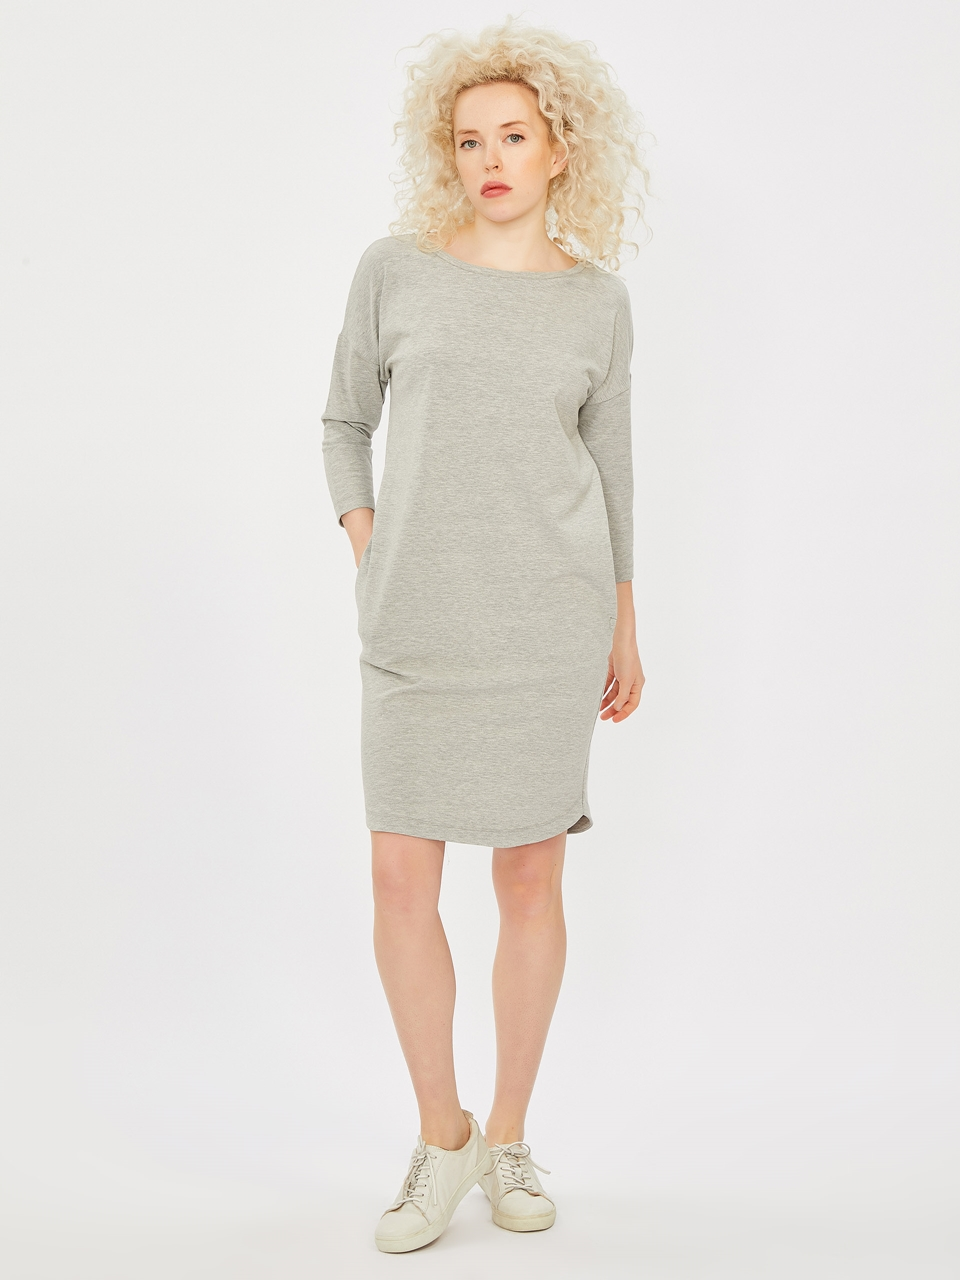 Comfortable Cut Dress With Pockets